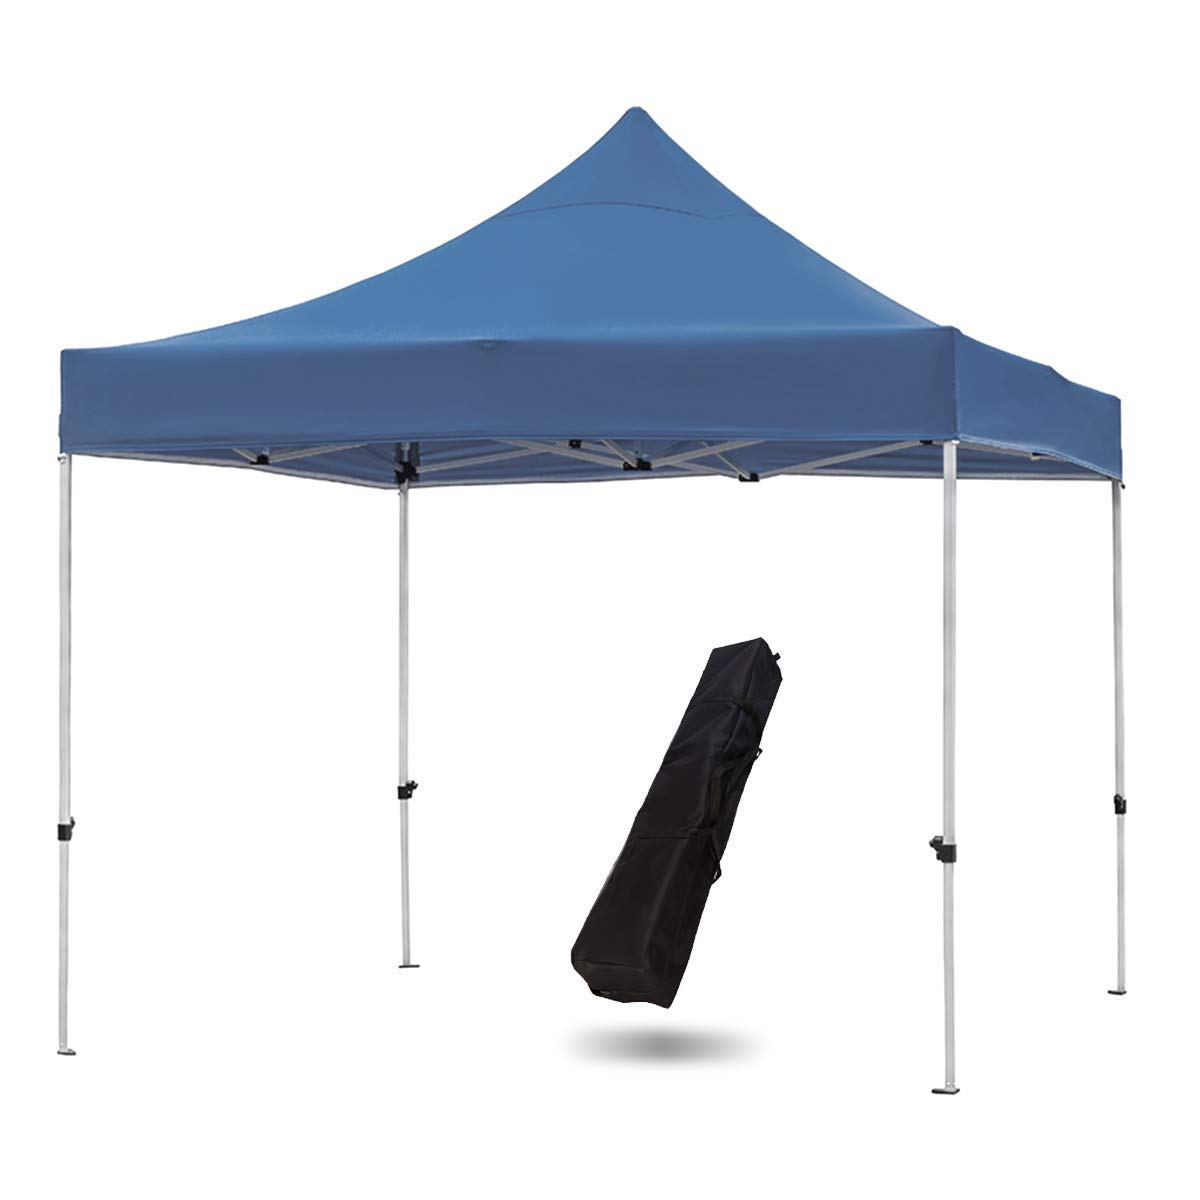 Snail Commercial Grade 10'x10' Outdoor Easy Pop Up Canopy Tent with Heavy Duty Aluminum Straight Leg and 420D Waterproof Top, Portable Event Party Shade Shelter with Carry Bag, Dark Blue